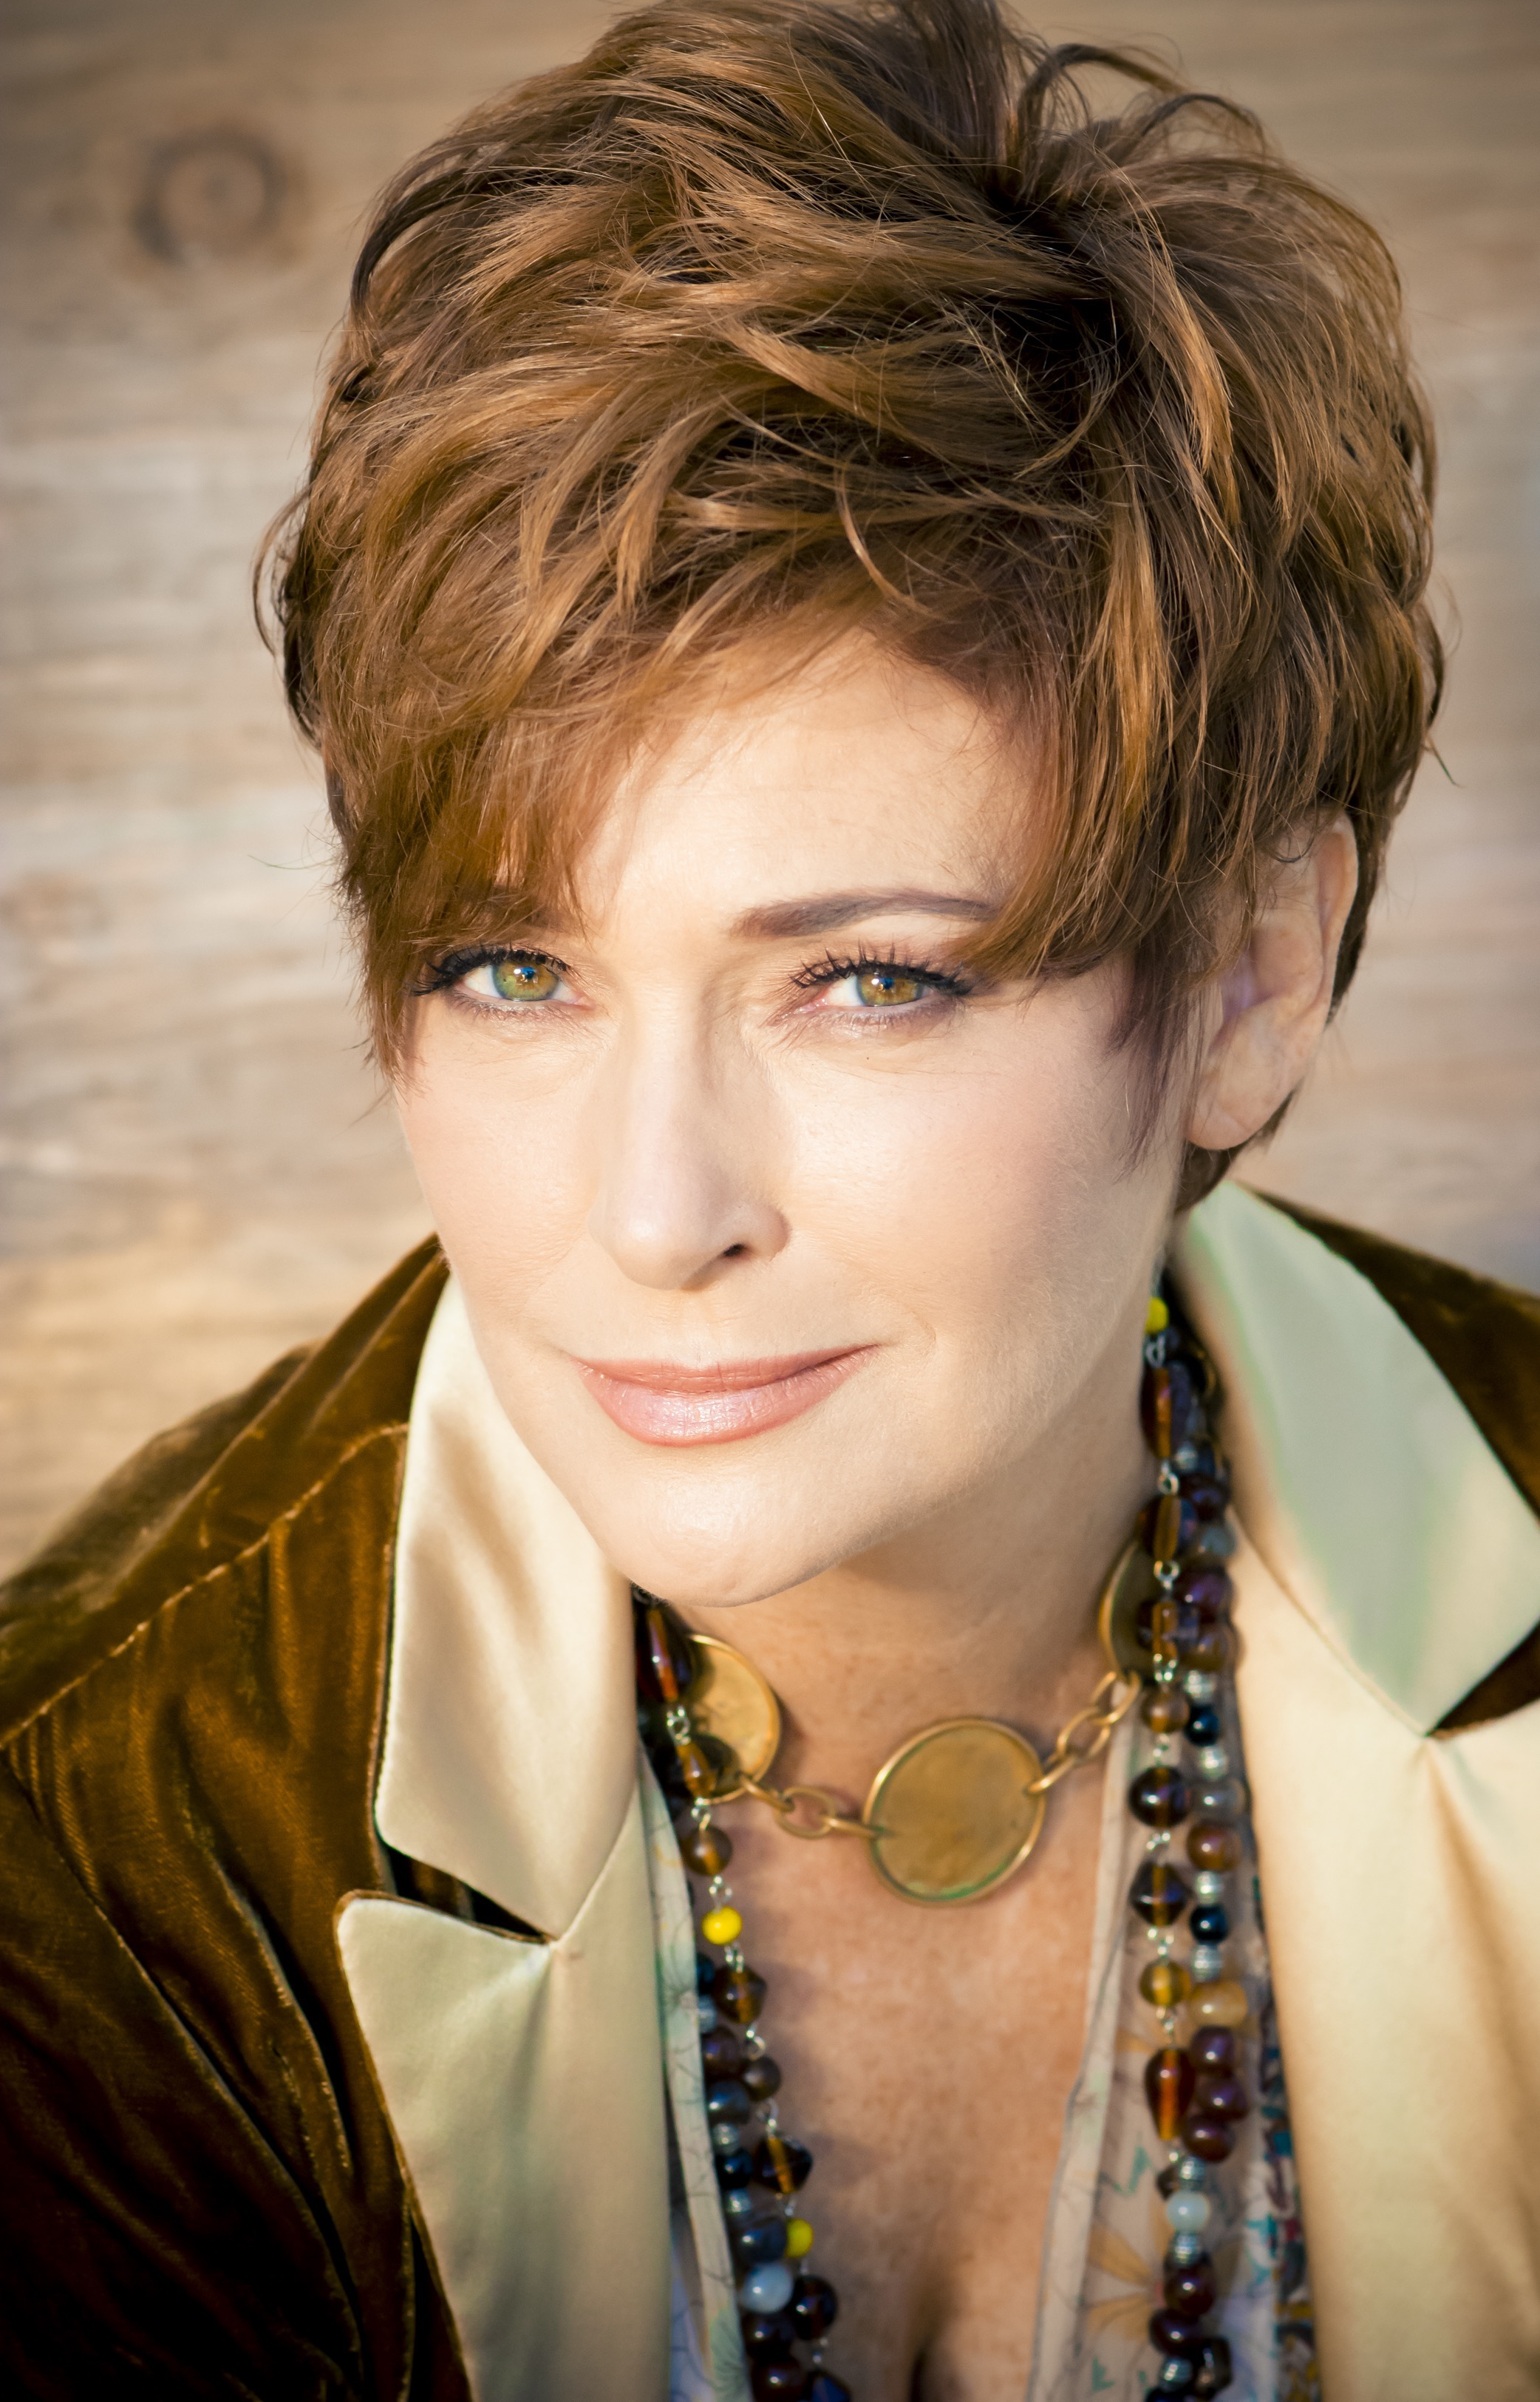 Carolyn Hennesy born June 10, 1962 (age 56) Carolyn Hennesy born June 10, 1962 (age 56) new pics